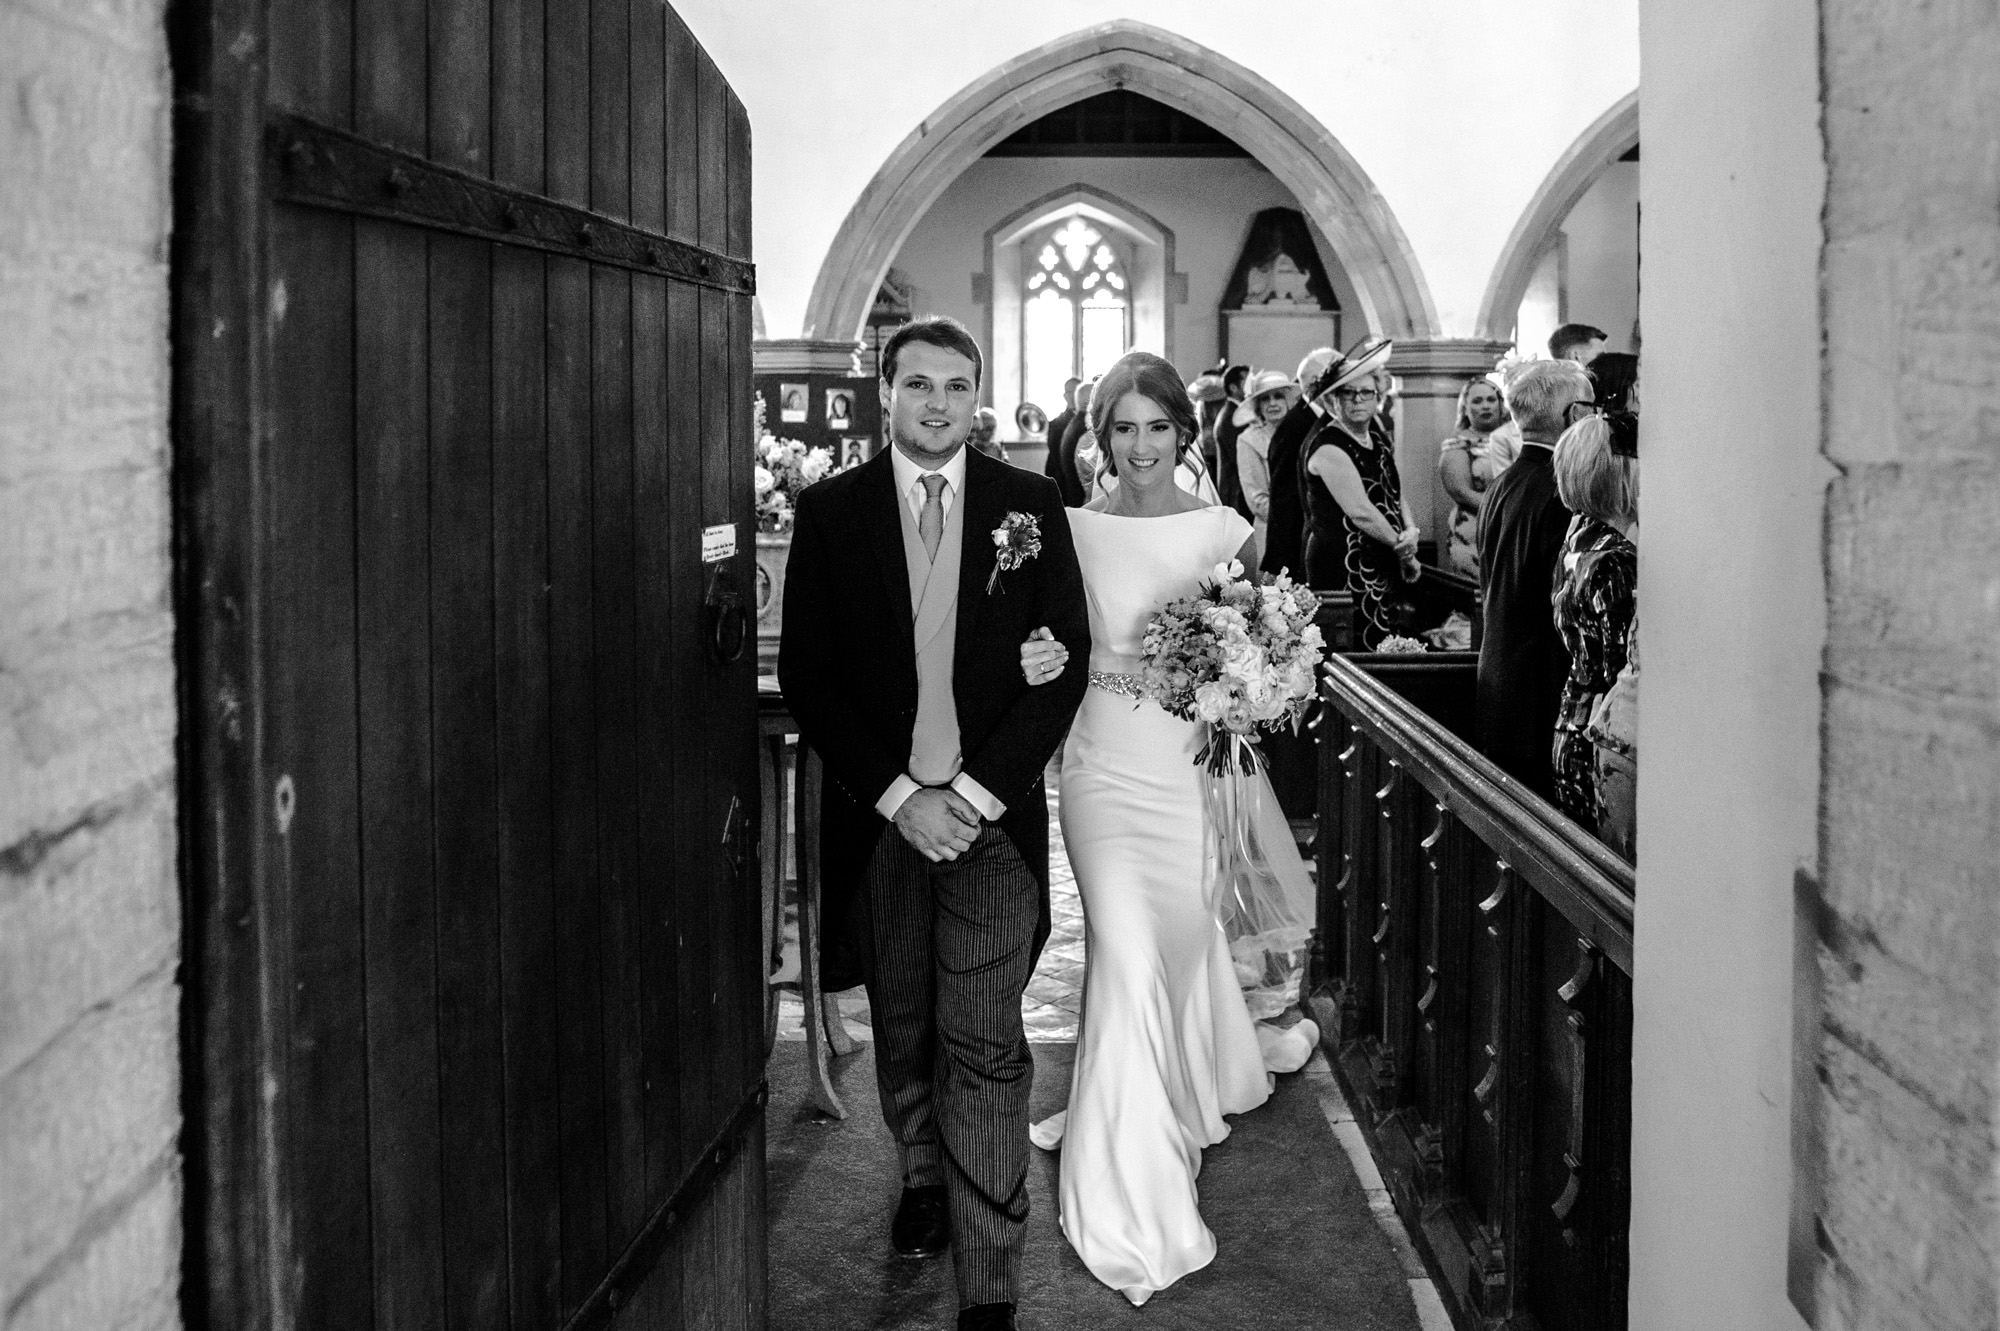 Cotswold Wedding Photography 11.09.1815.jpg